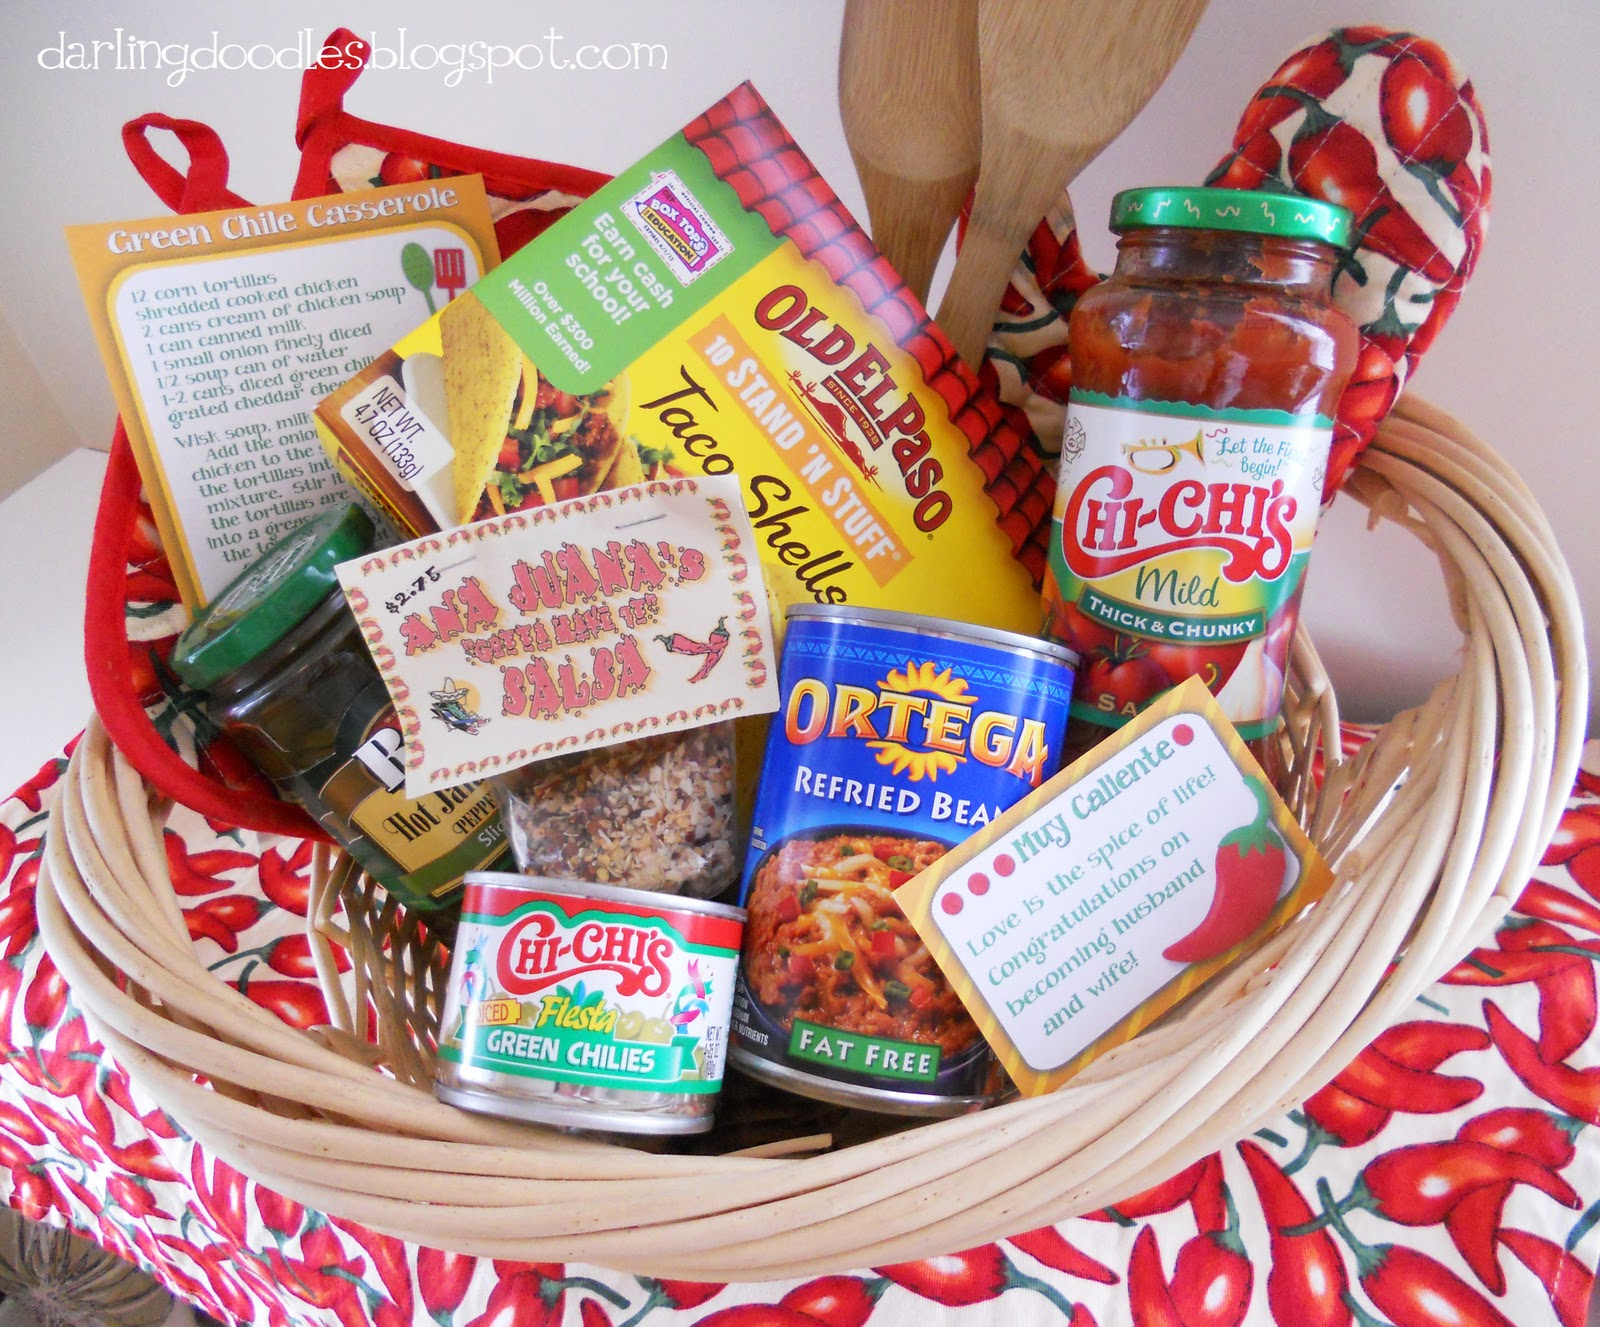 Themes For Gift Baskets: Darling Doodles